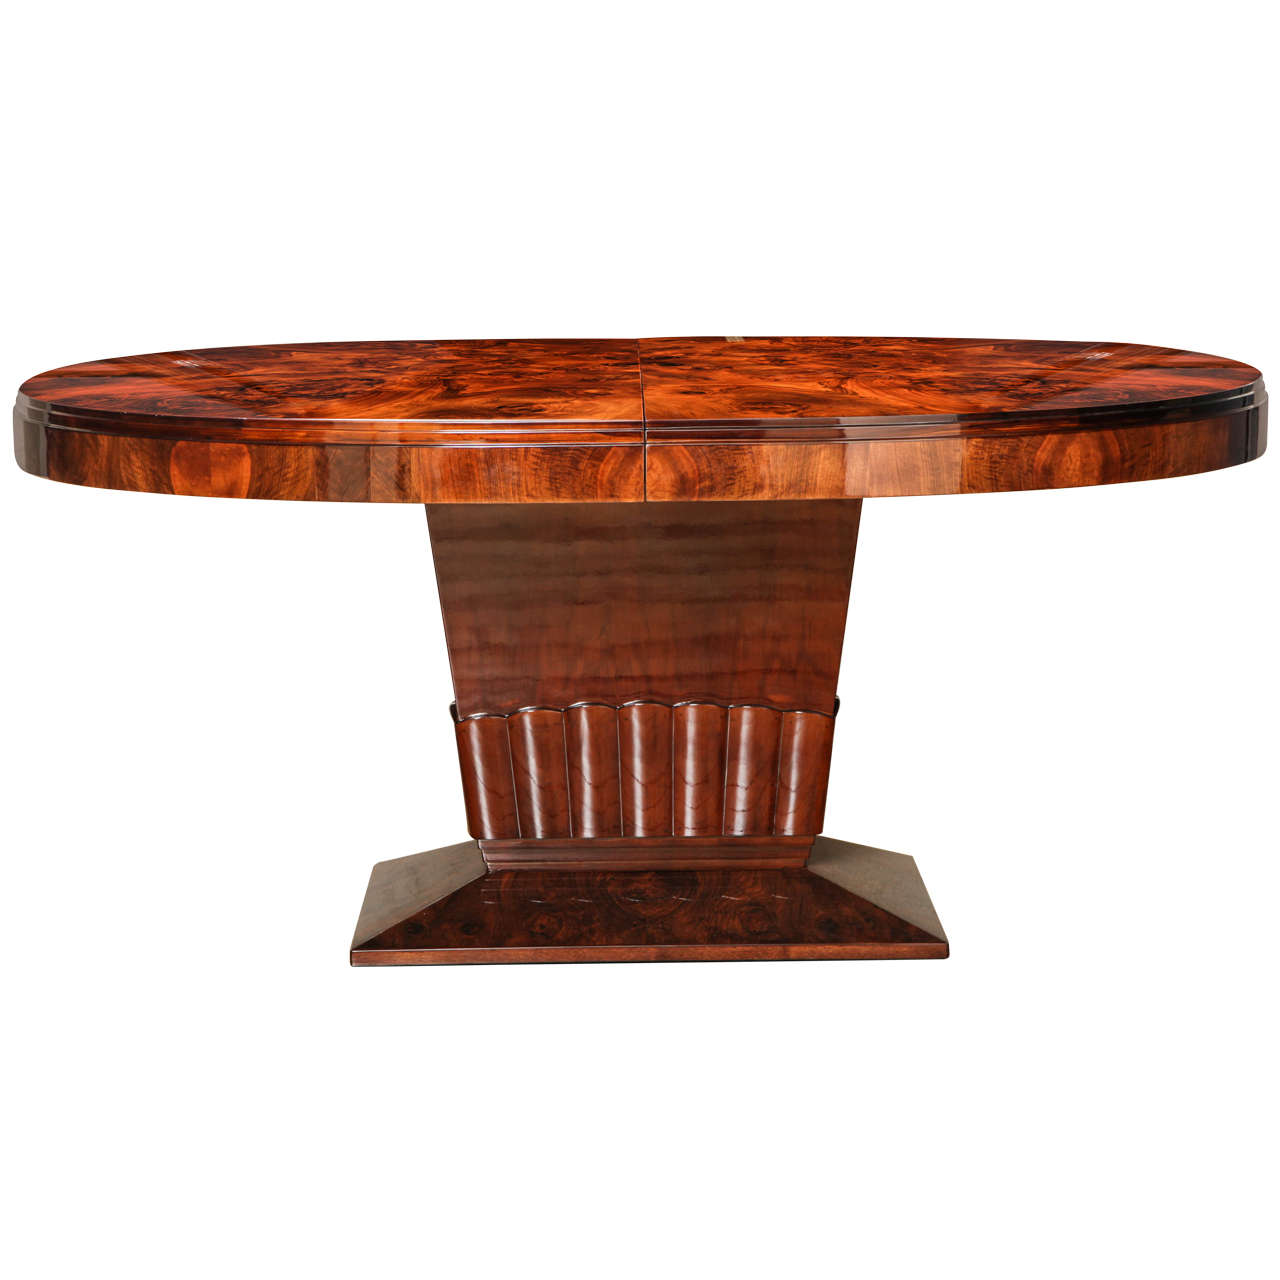 Oval art deco dining table at 1stdibs for Art dining room furniture